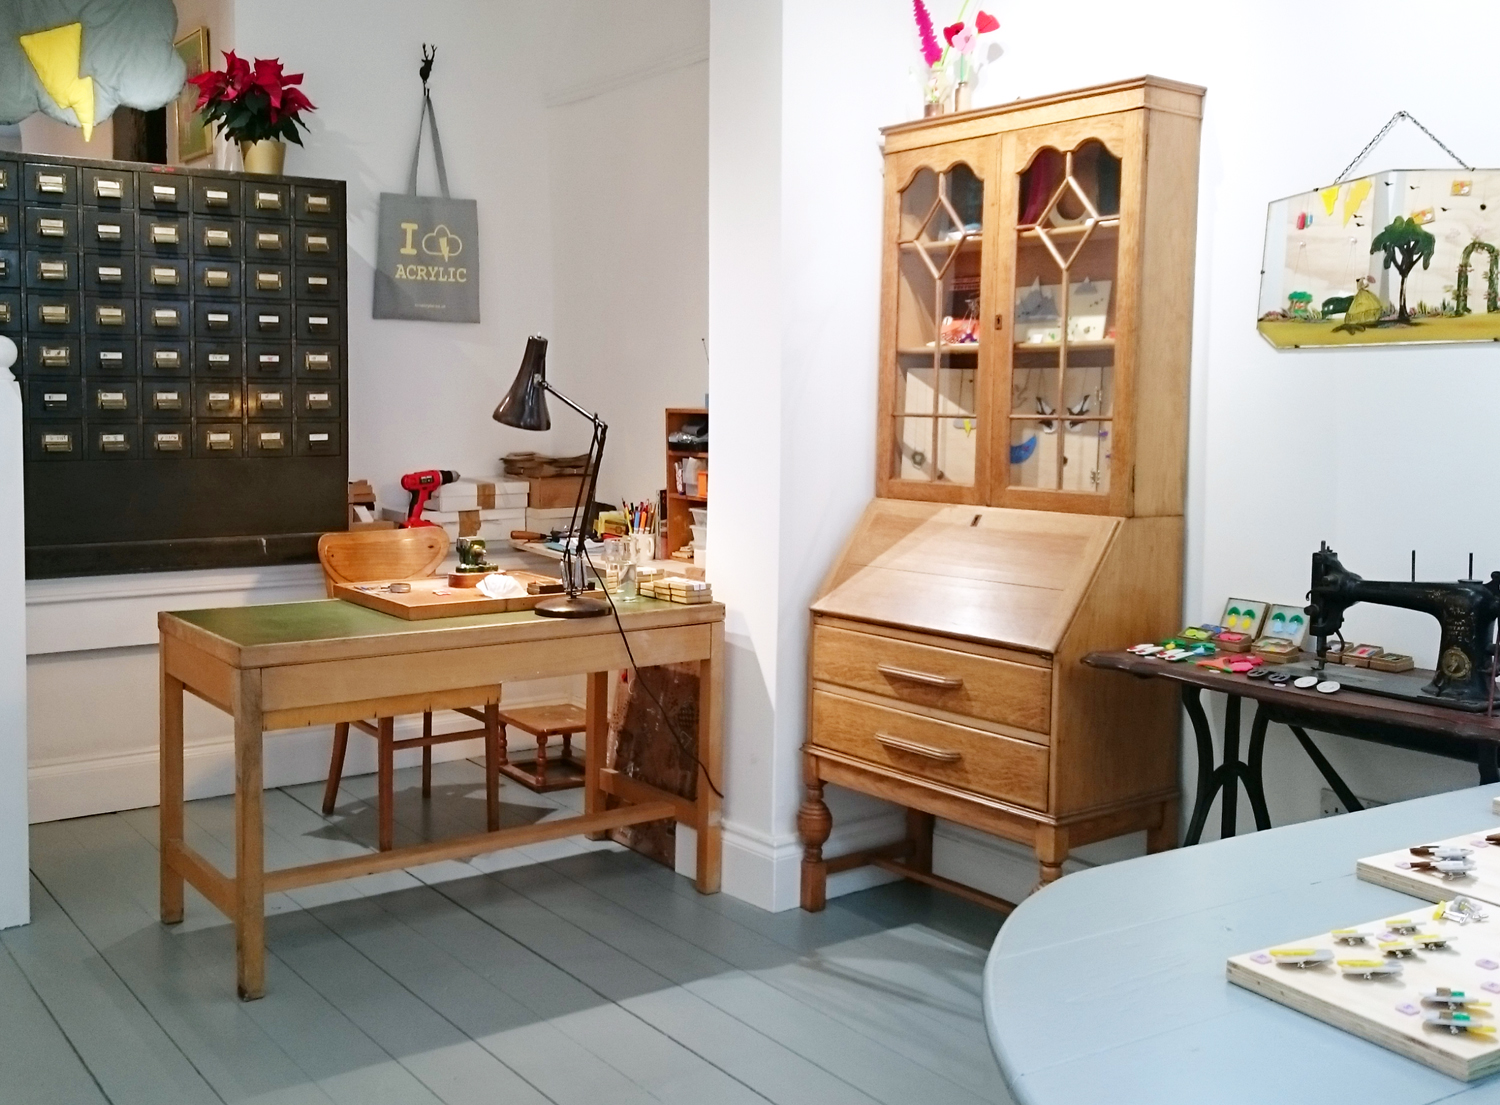 I Am Acrylic's very tidy studio is situated out the back of their shop on Christmas Steps in Bristol.